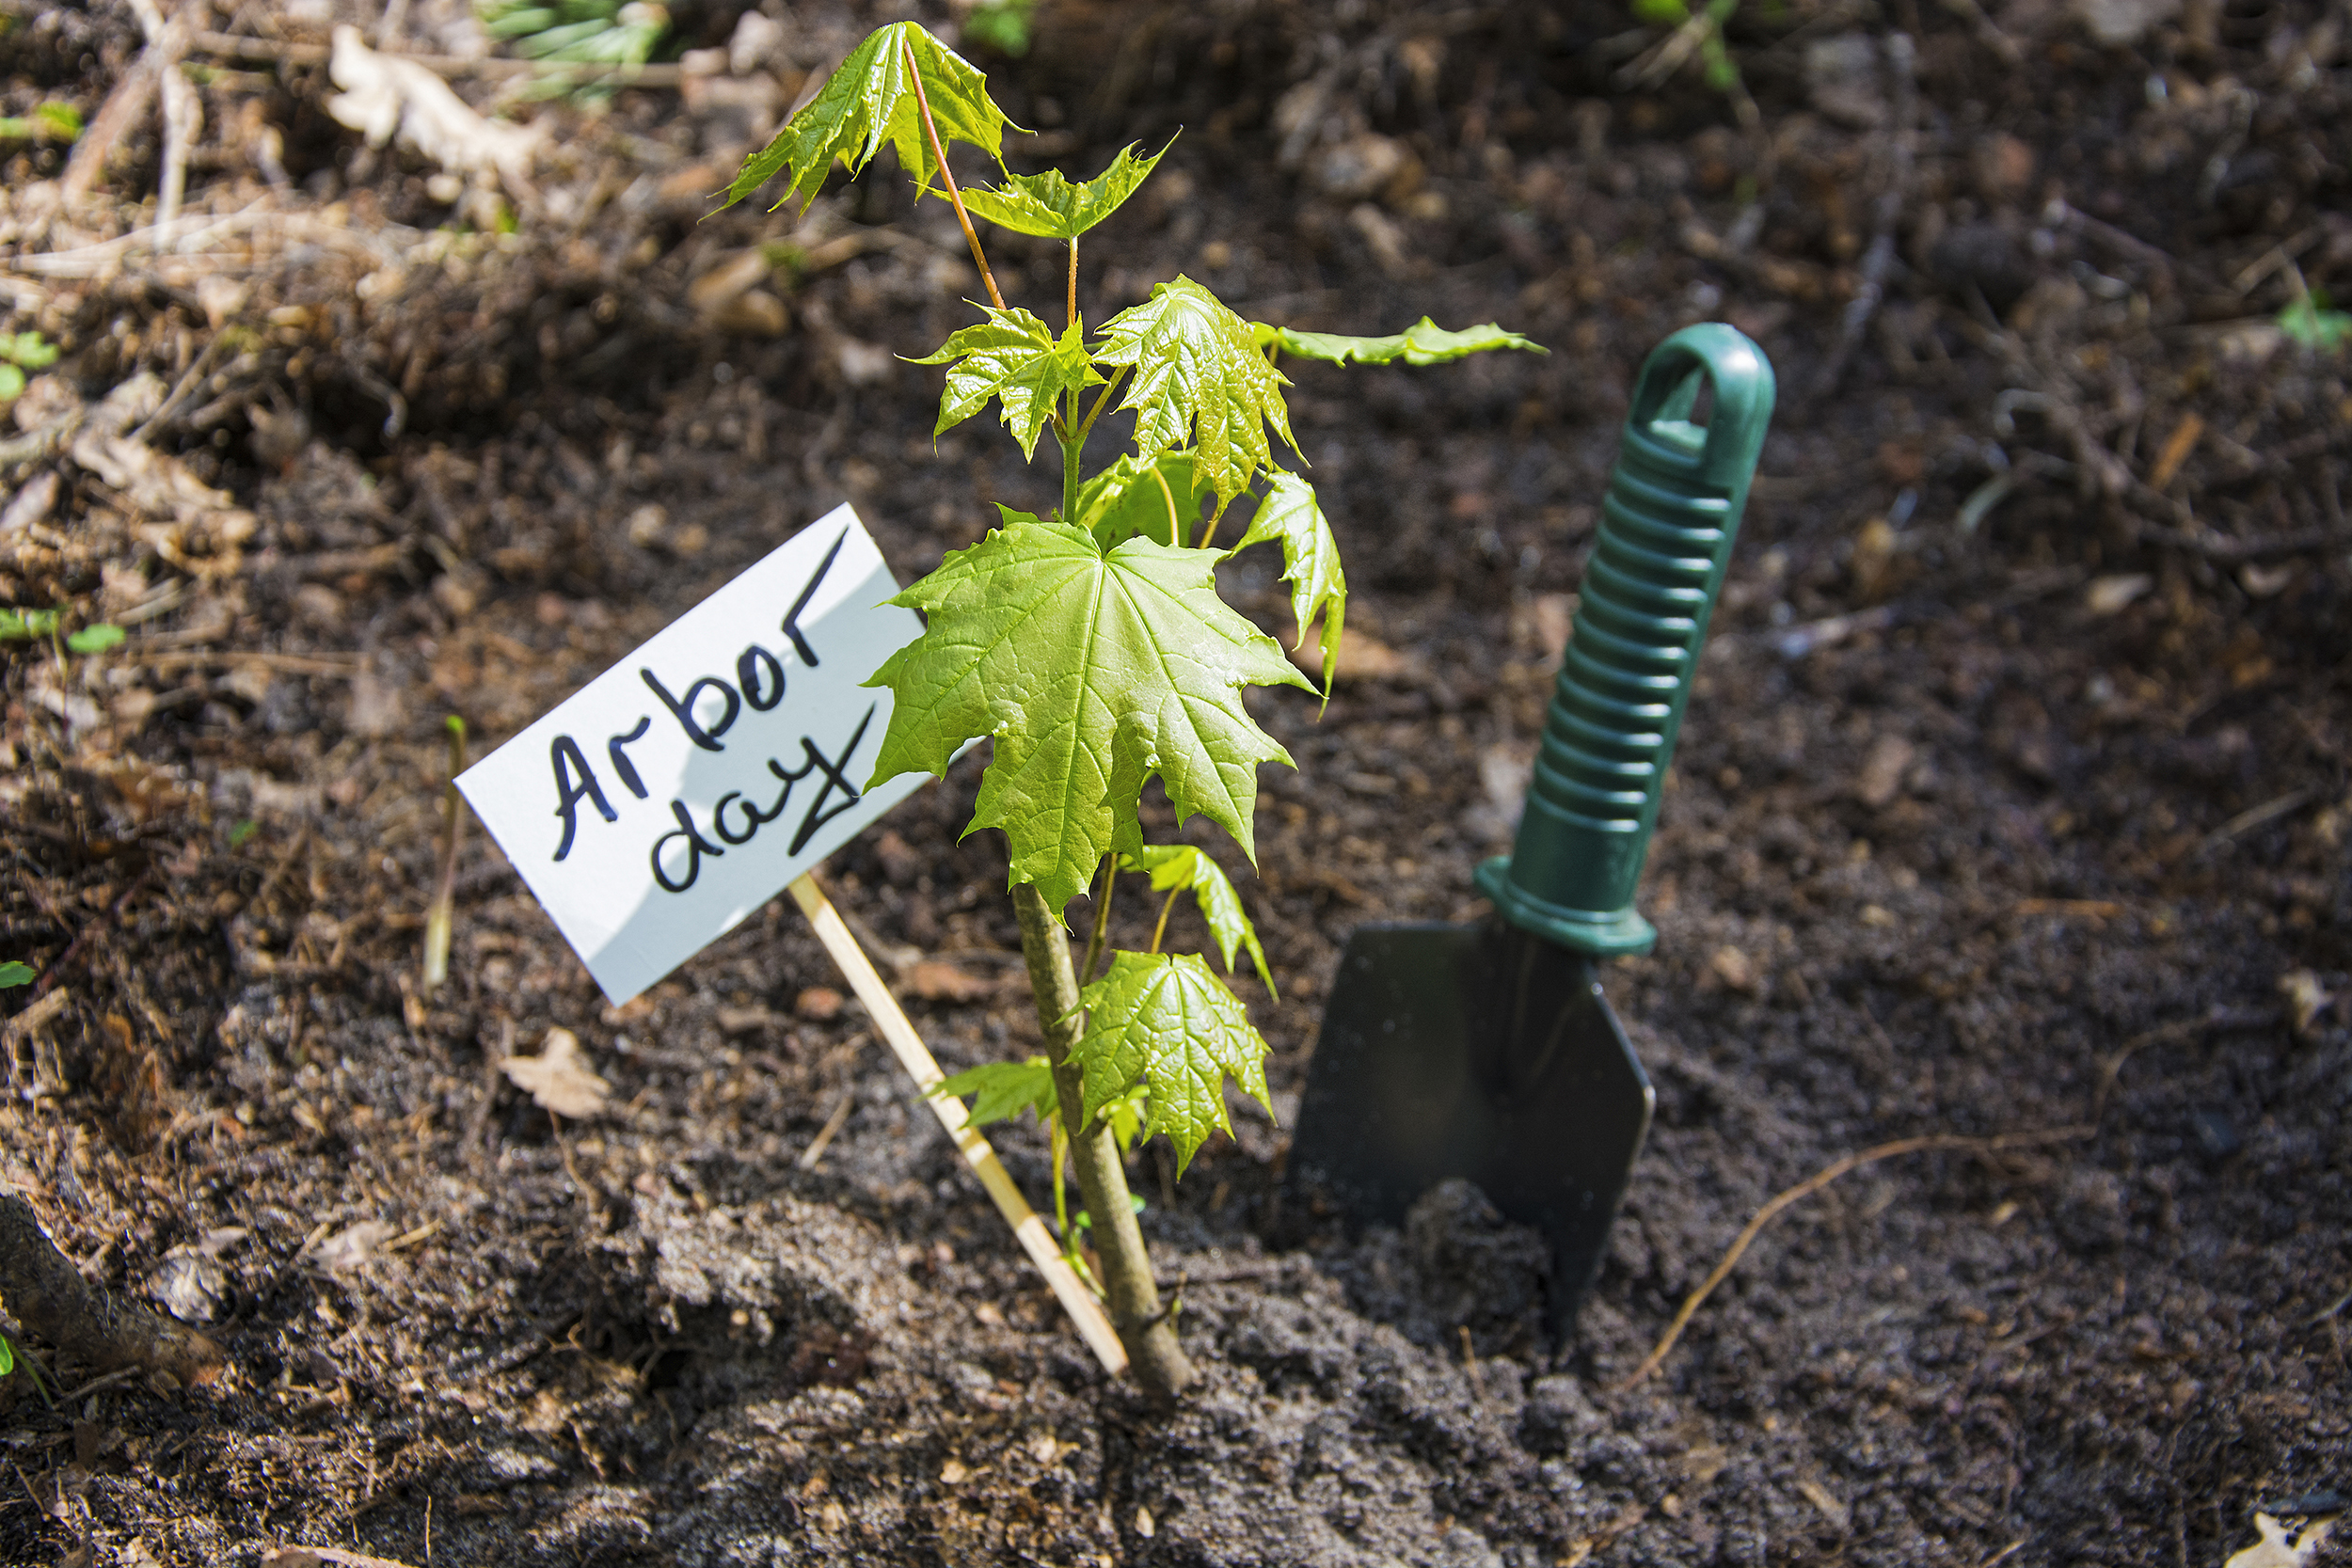 A freshly planted maple tree seedling with an Arbor Day sign next to it.